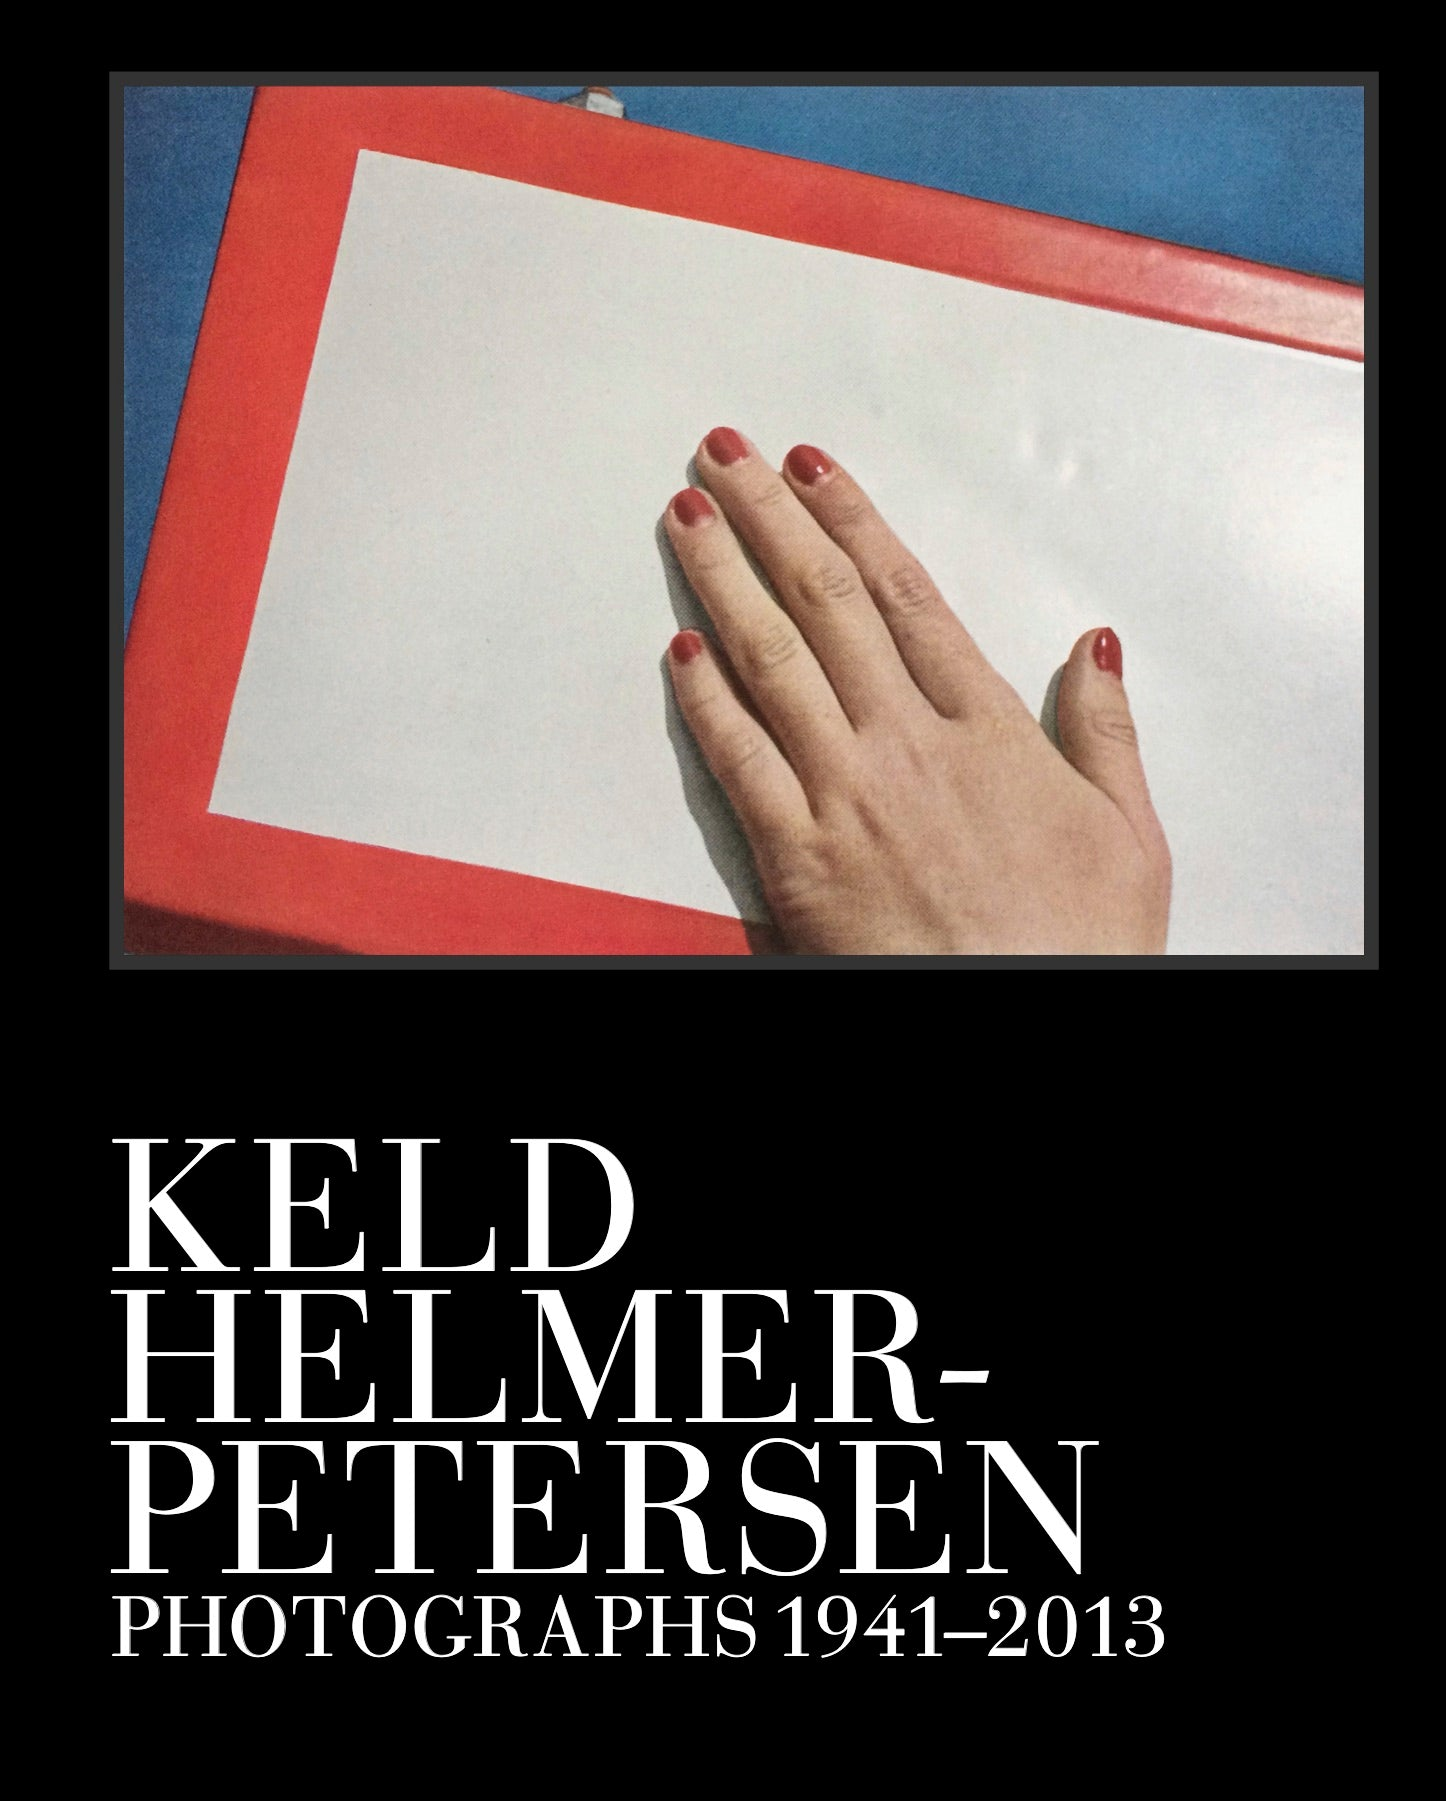 Keld Helmer-Petersen – Photographs 1941-2013